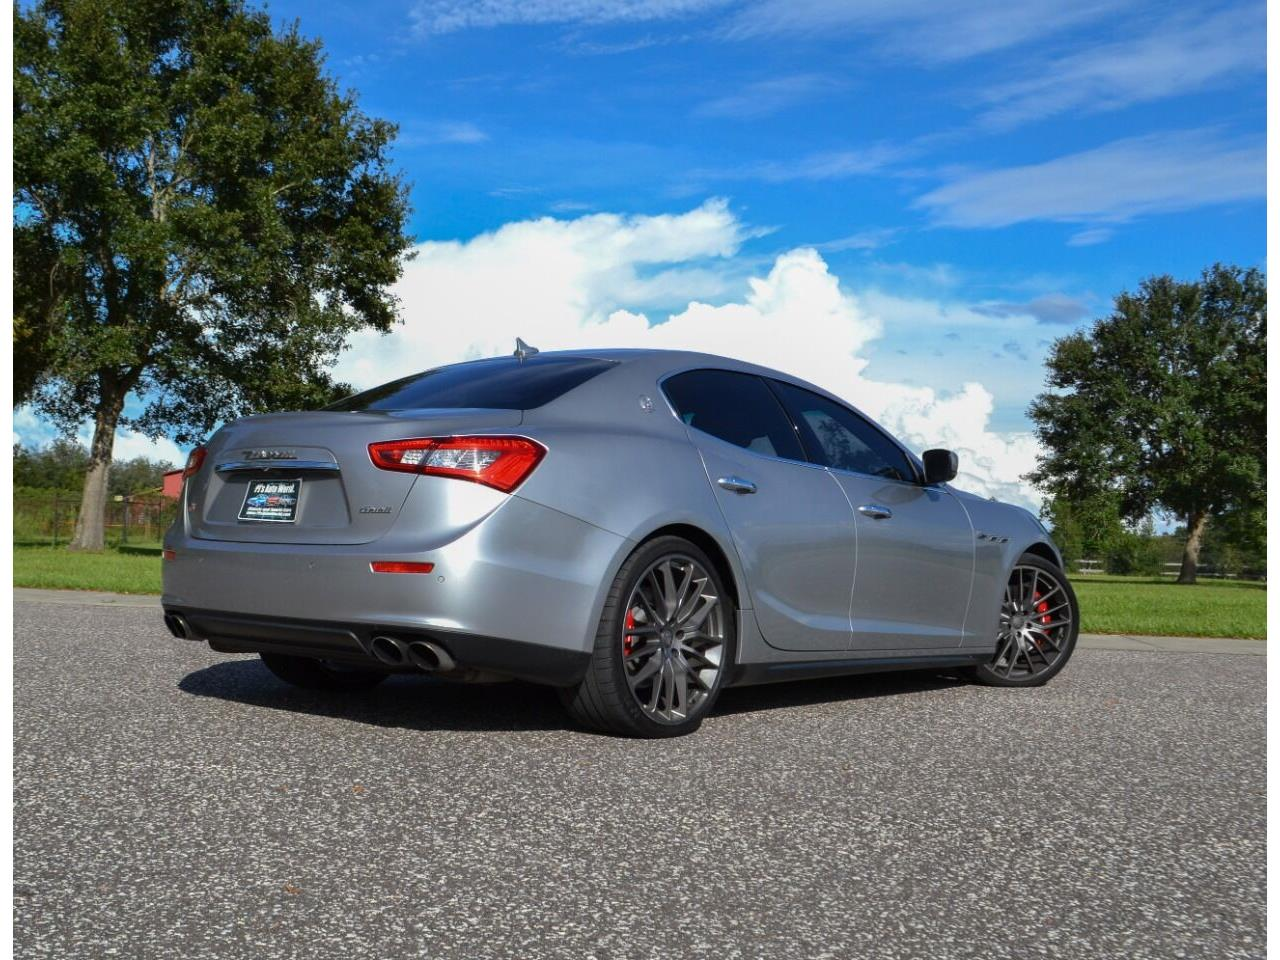 2015 Maserati Ghibli (CC-1410193) for sale in Clearwater, Florida